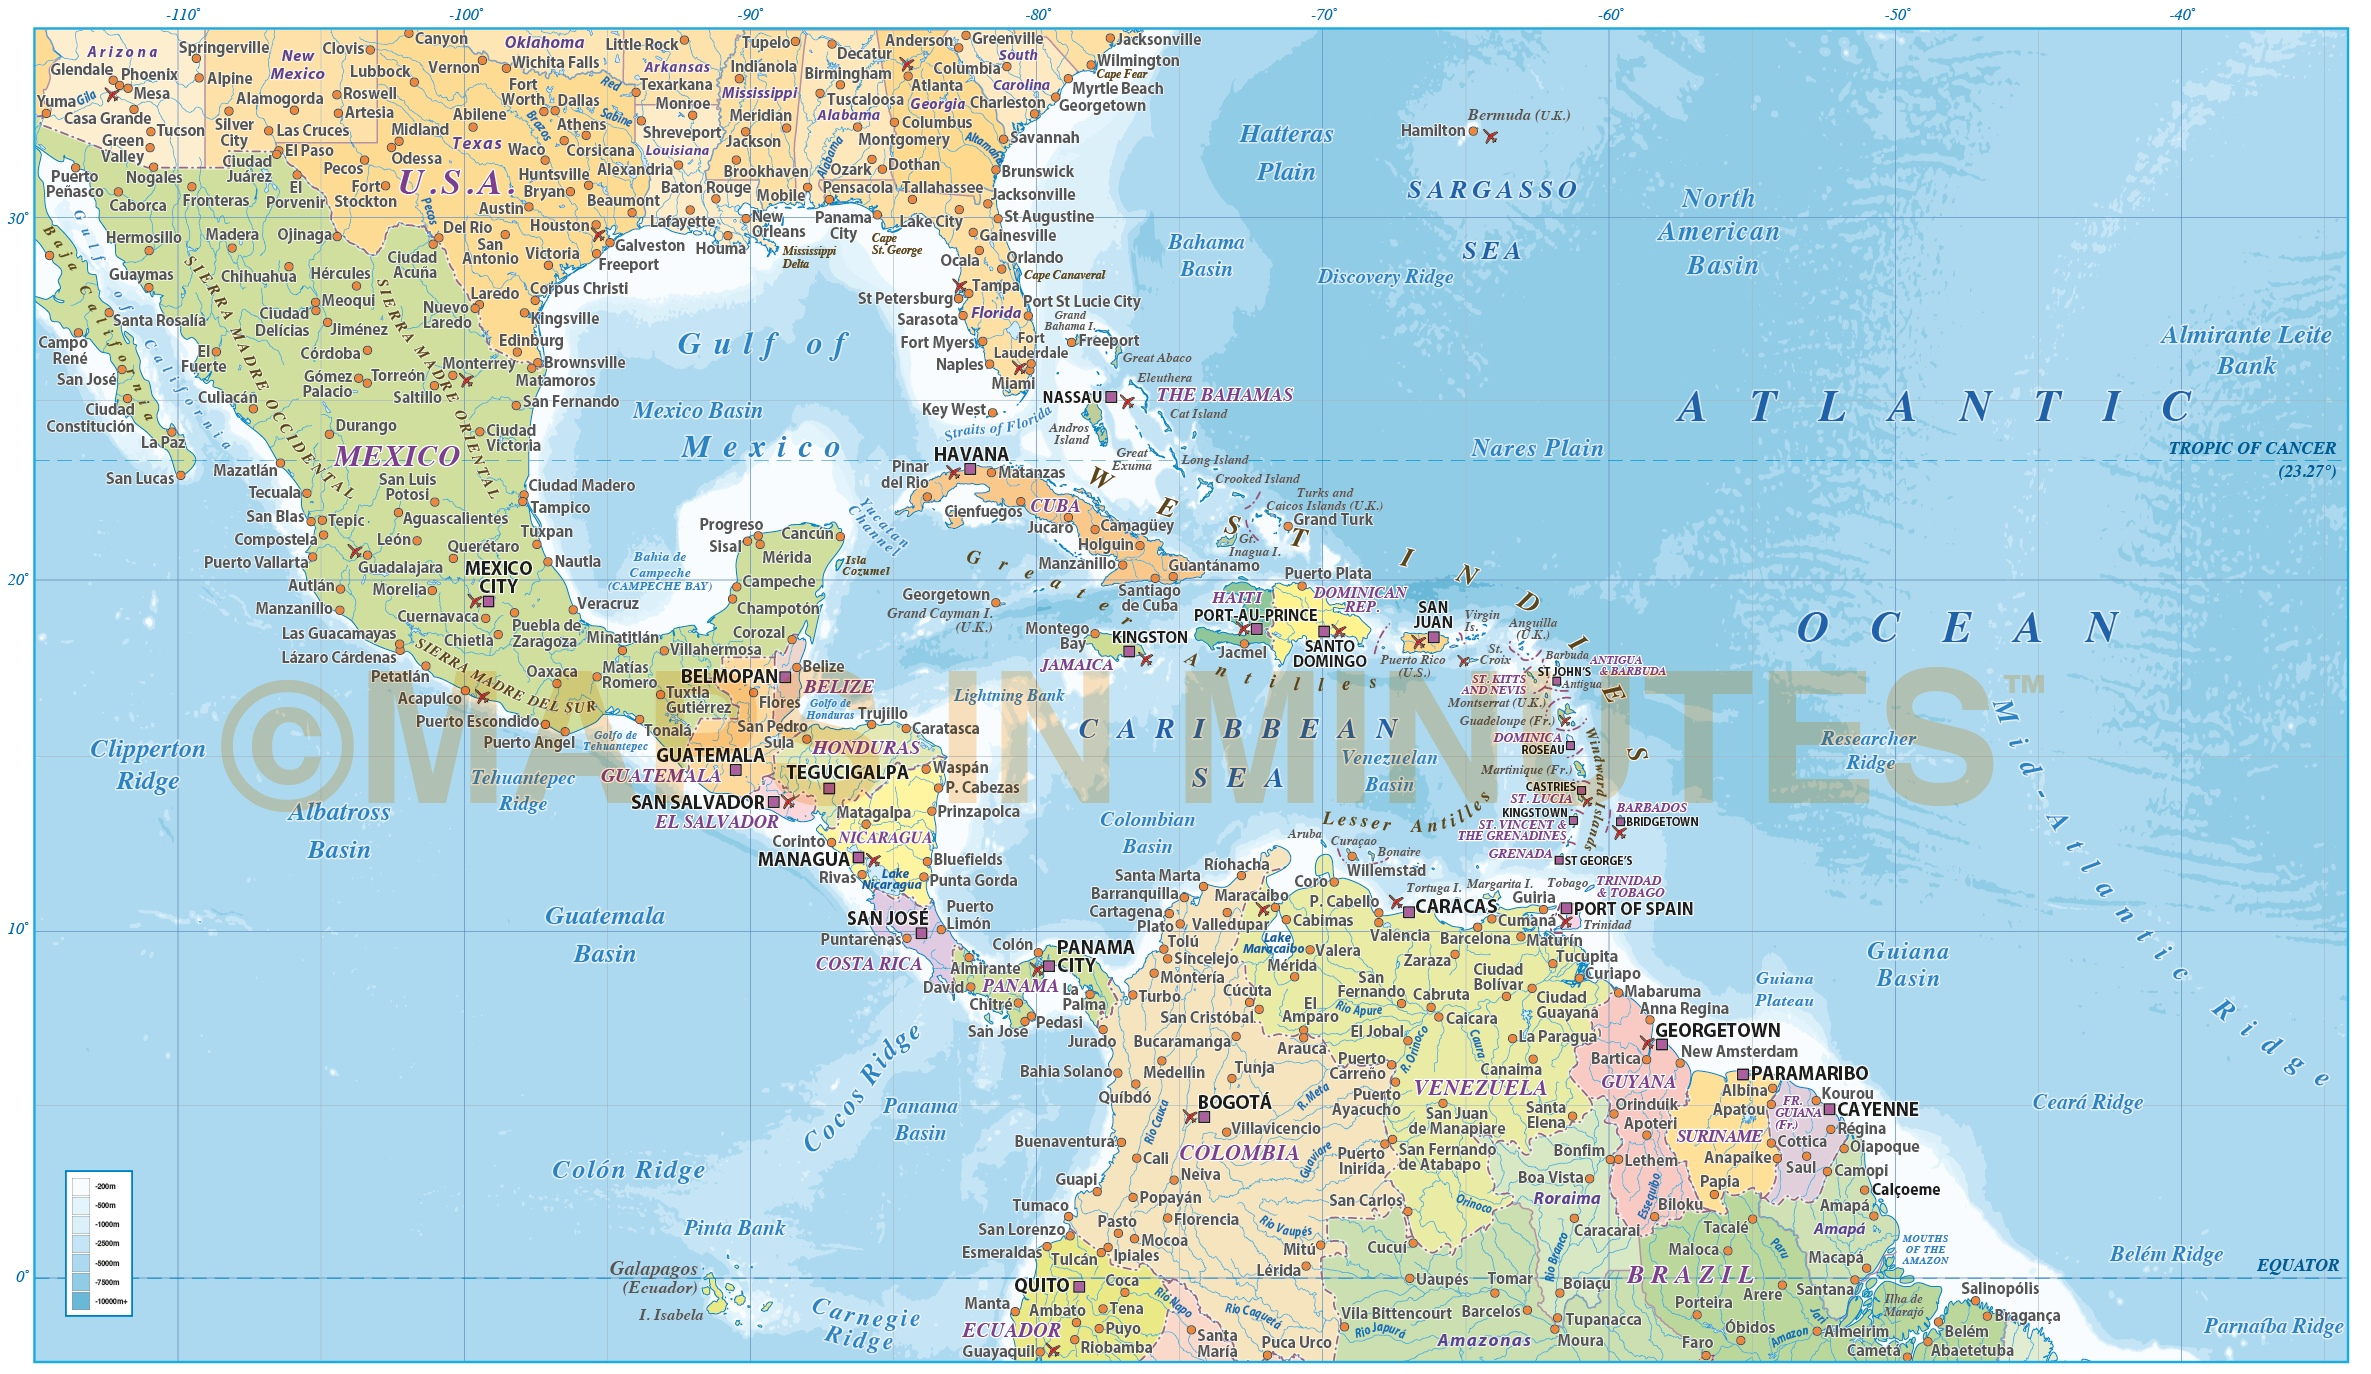 Central America Caribbean Political Map With Ocean Floor Contours In Ilrator Cs And Pdf Formats